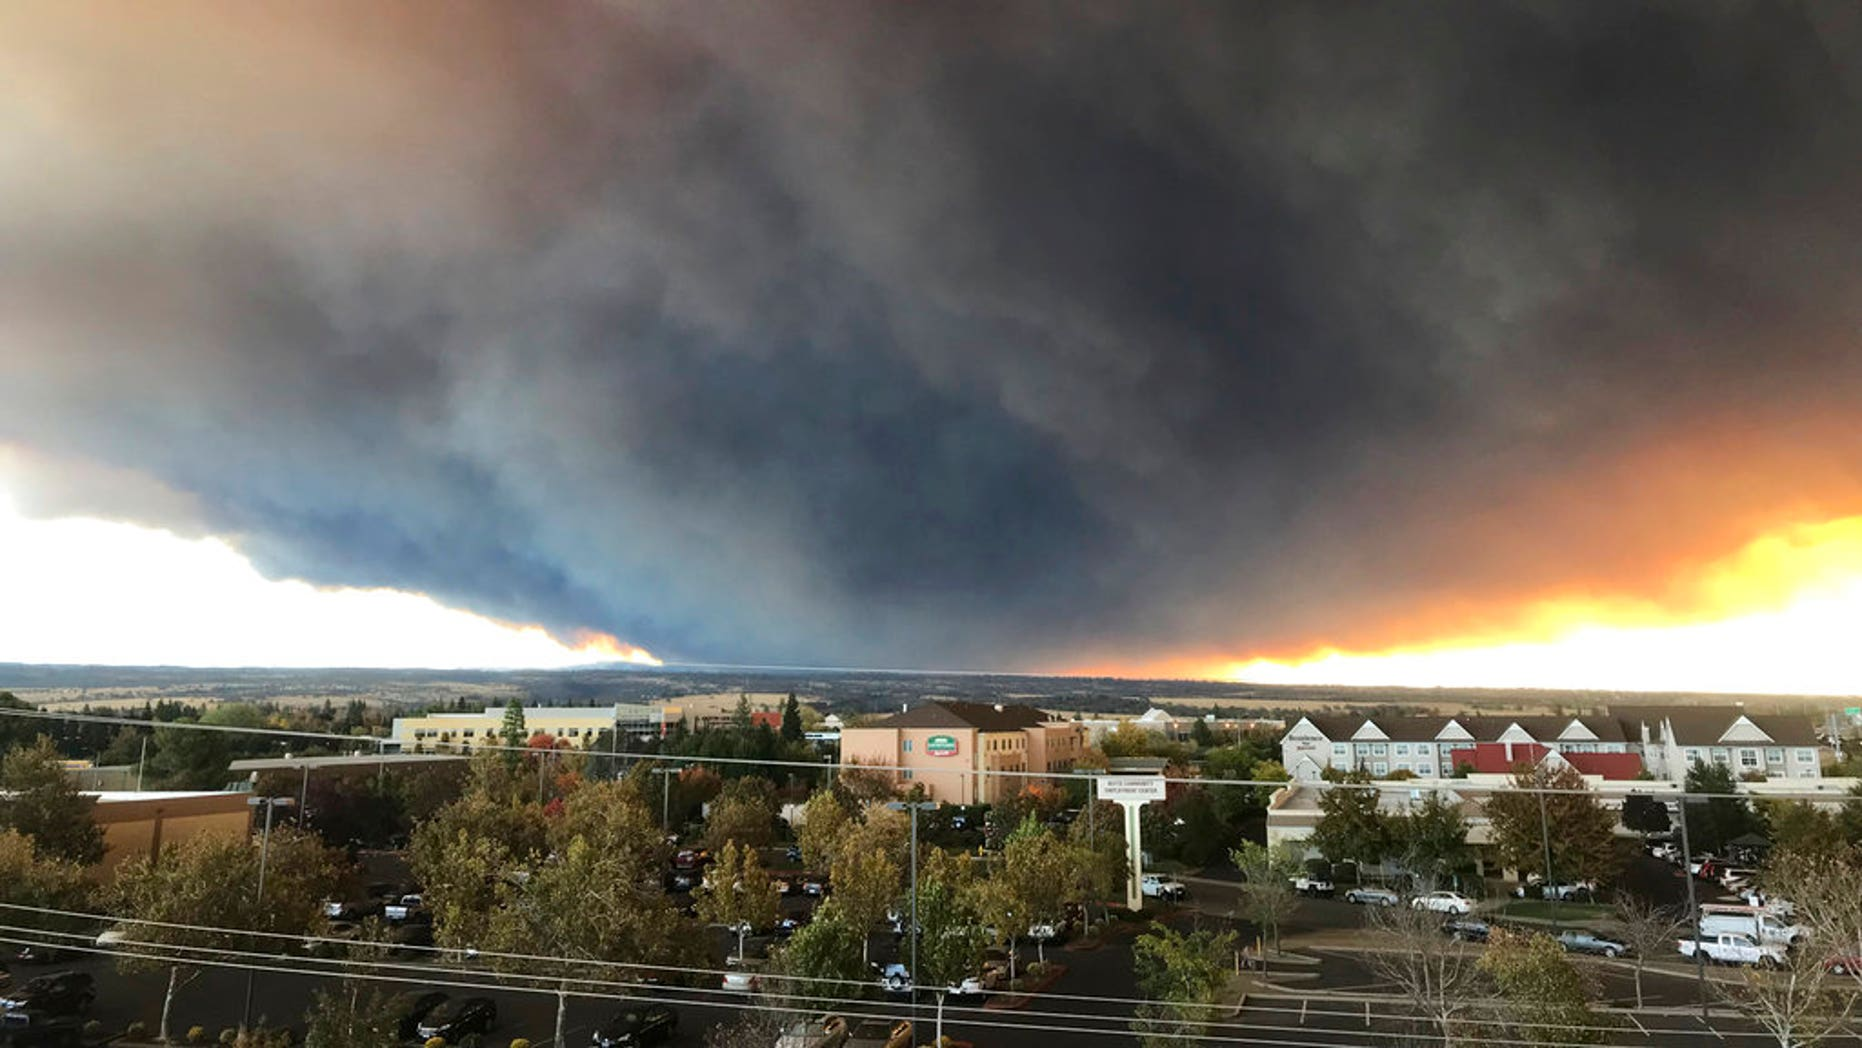 PARADISE EVACUATED: Fast-Growing Butte County Fire Has Already Burned 5000 Acres